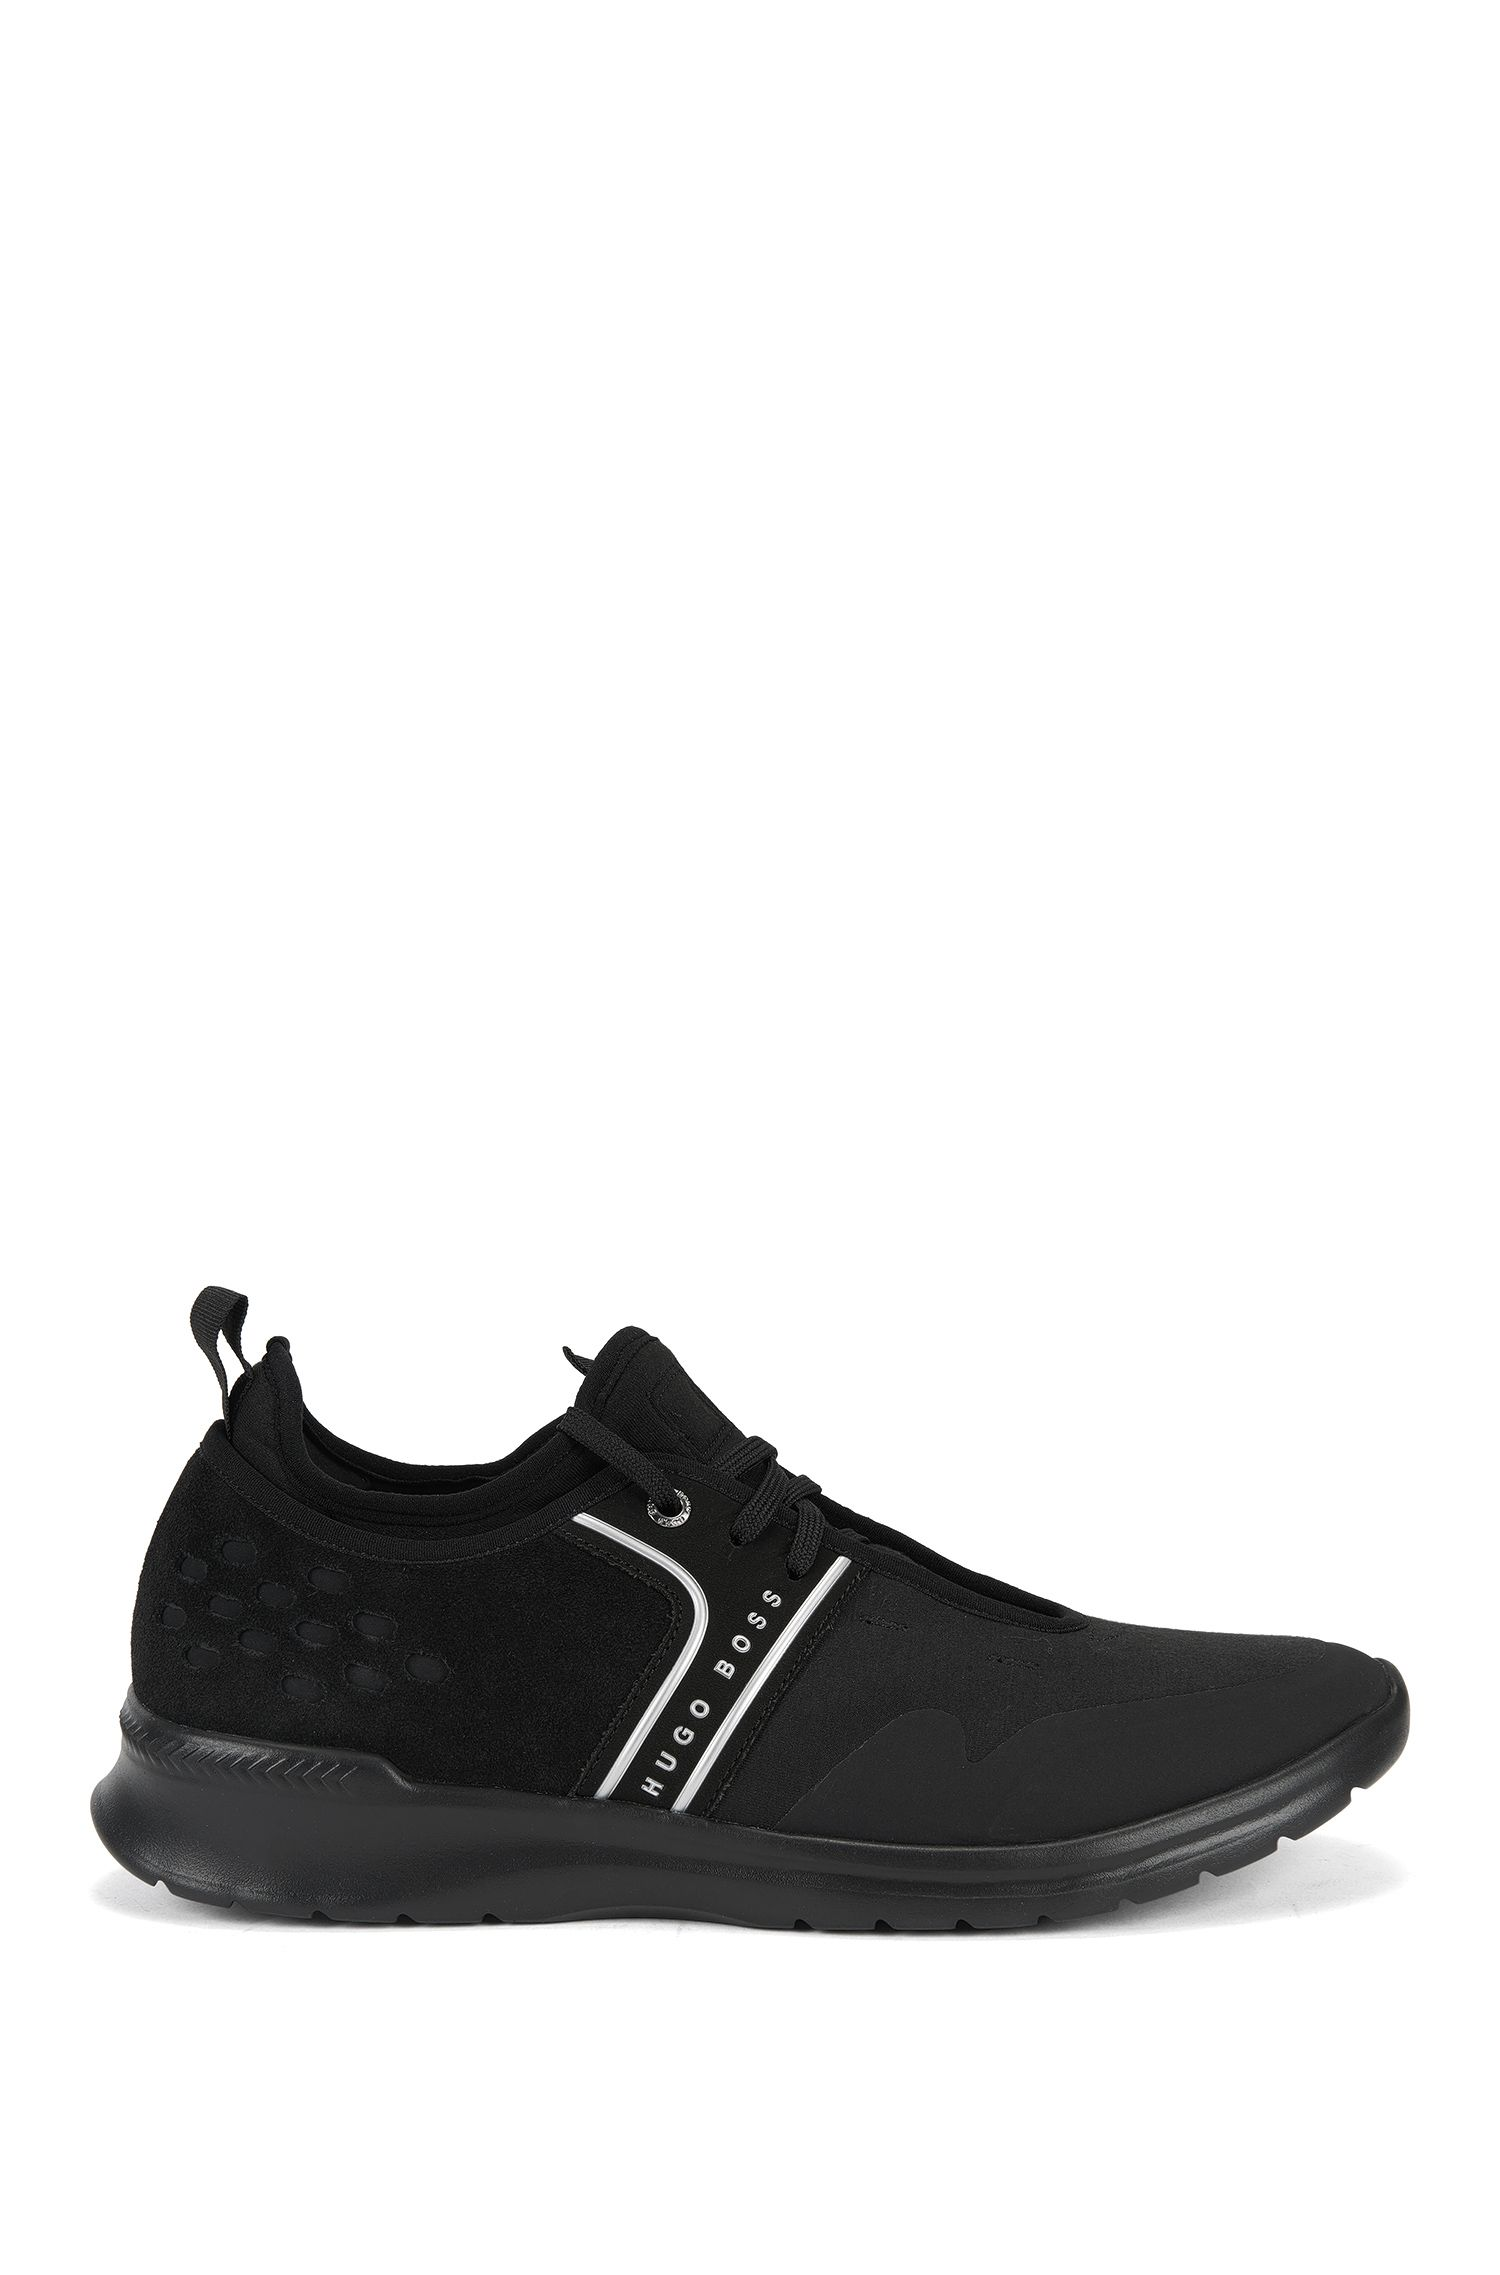 Lightweight trainers with gradient uppers